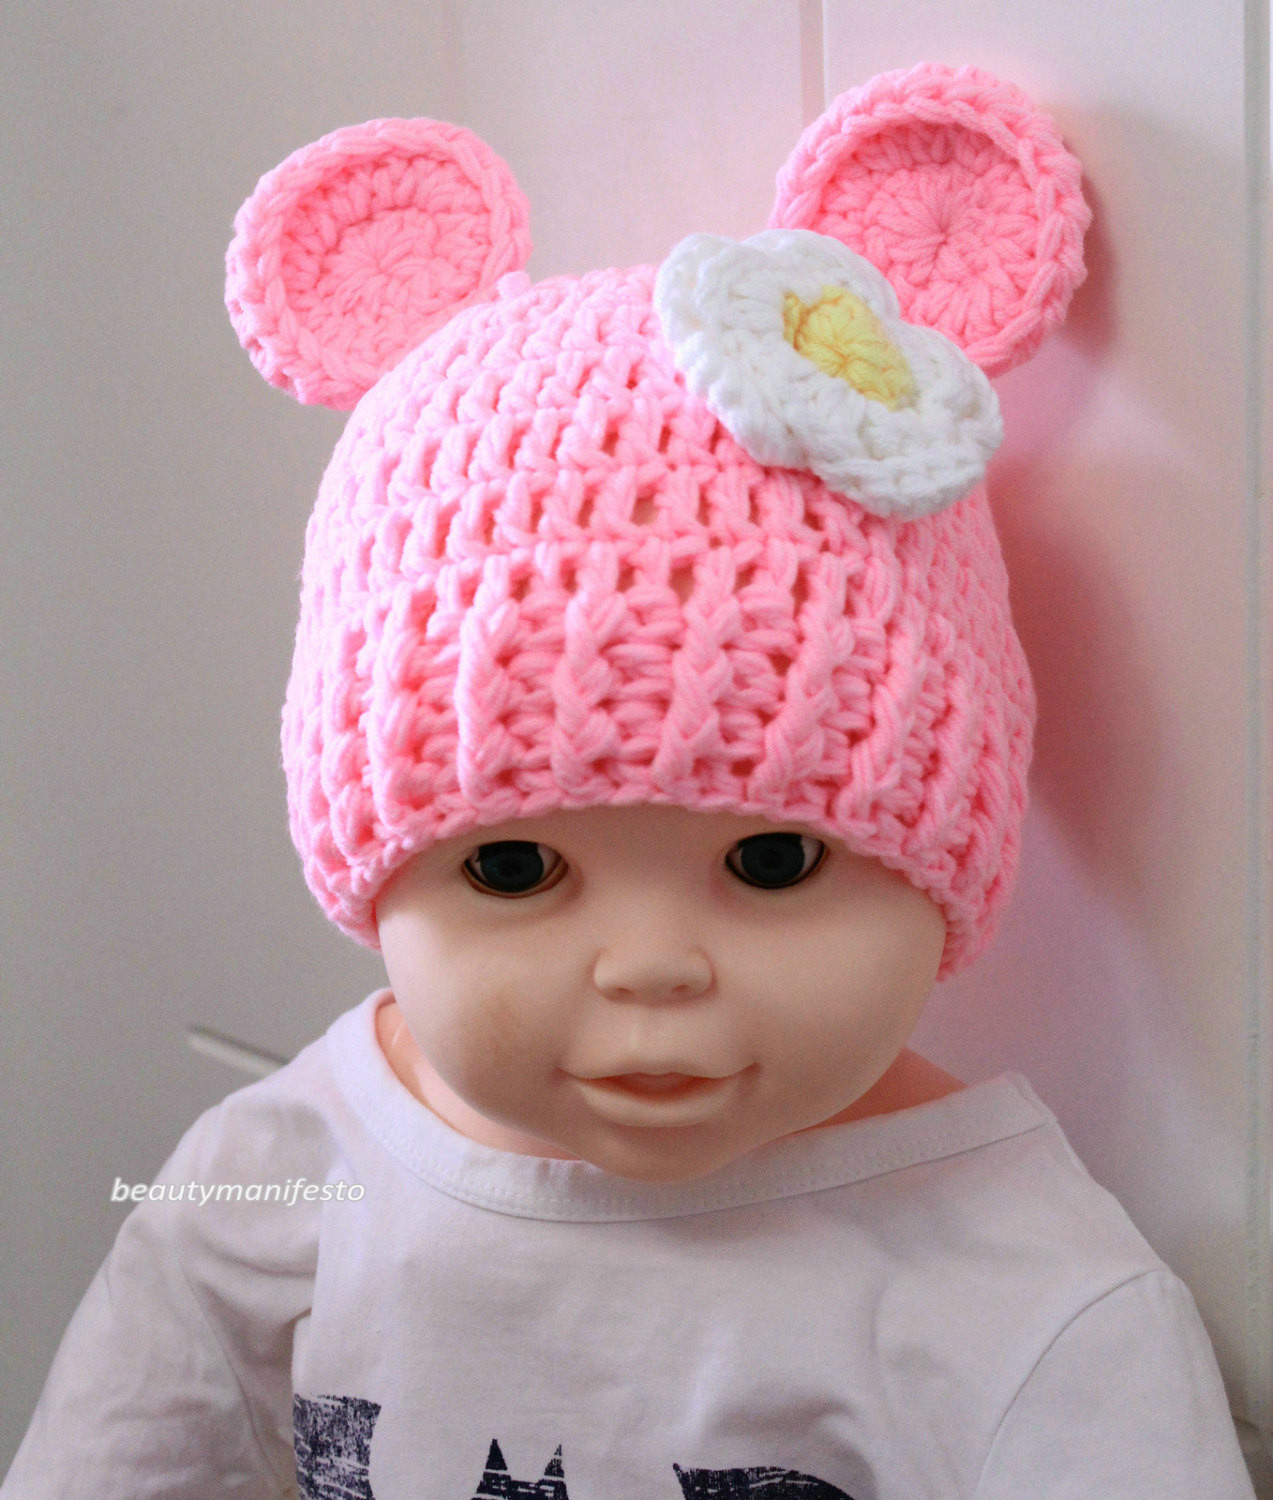 Crochet Girl Hat Elegant Newborn Baby Girl Crochet Hats Of Superb 47 Pics Crochet Girl Hat